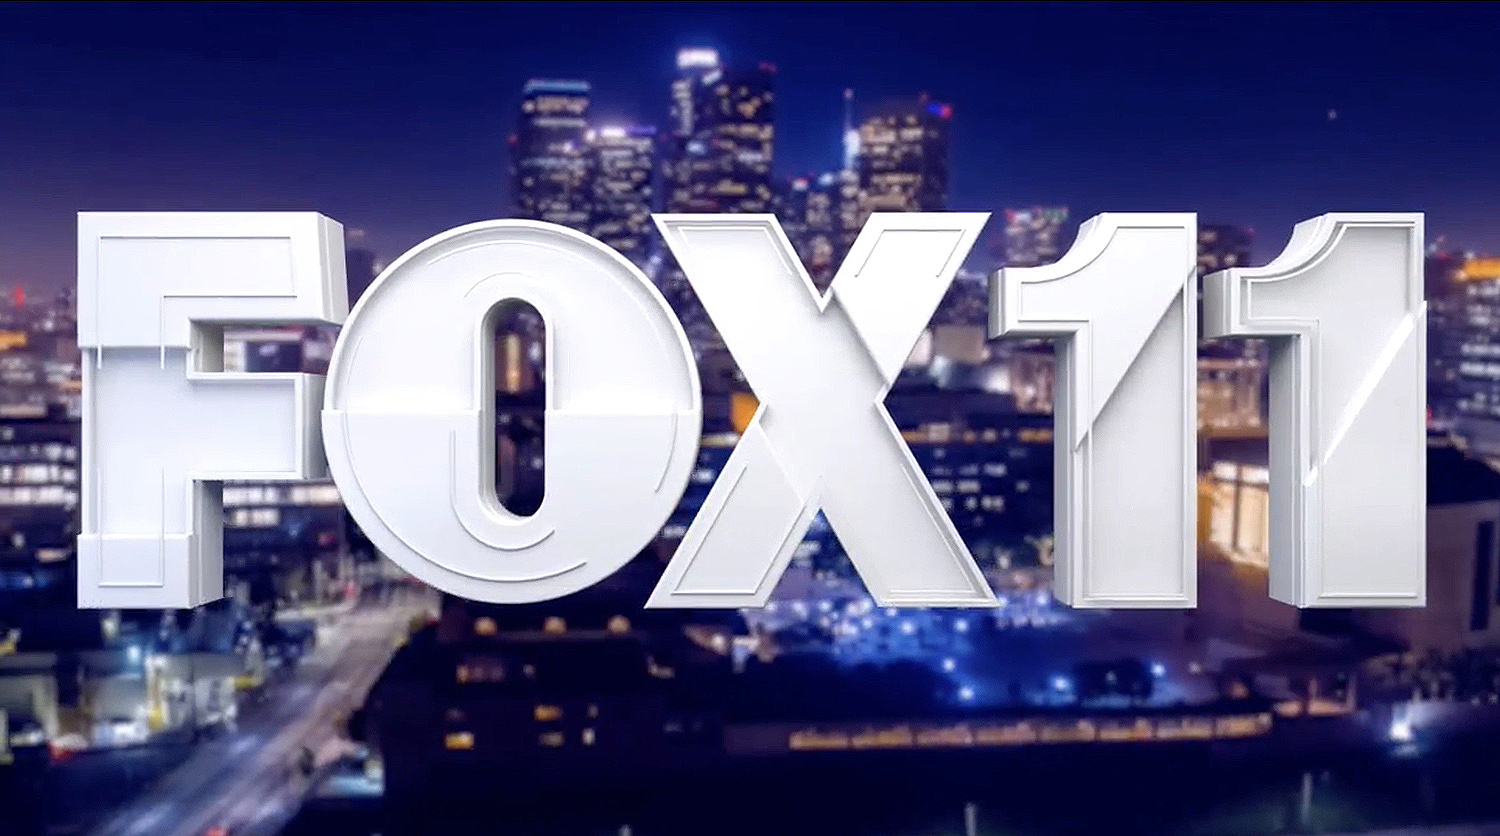 NCS_Fox-11-News_KTTV-Motion-Graphics-2020_46